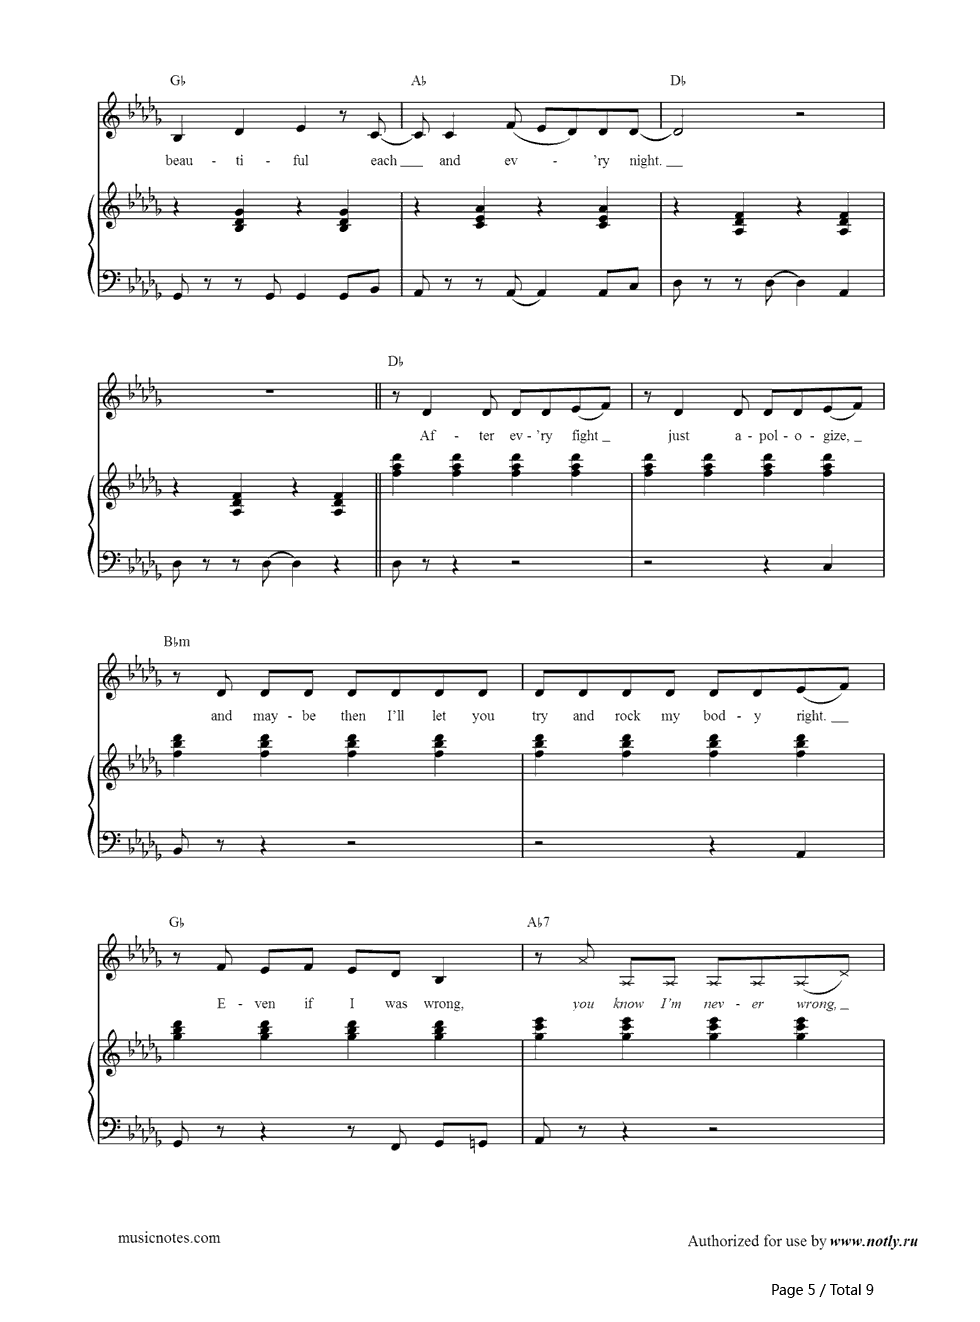 Dear Future Husband-Meghan Trainor Free Piano Sheet Music & Piano Chords